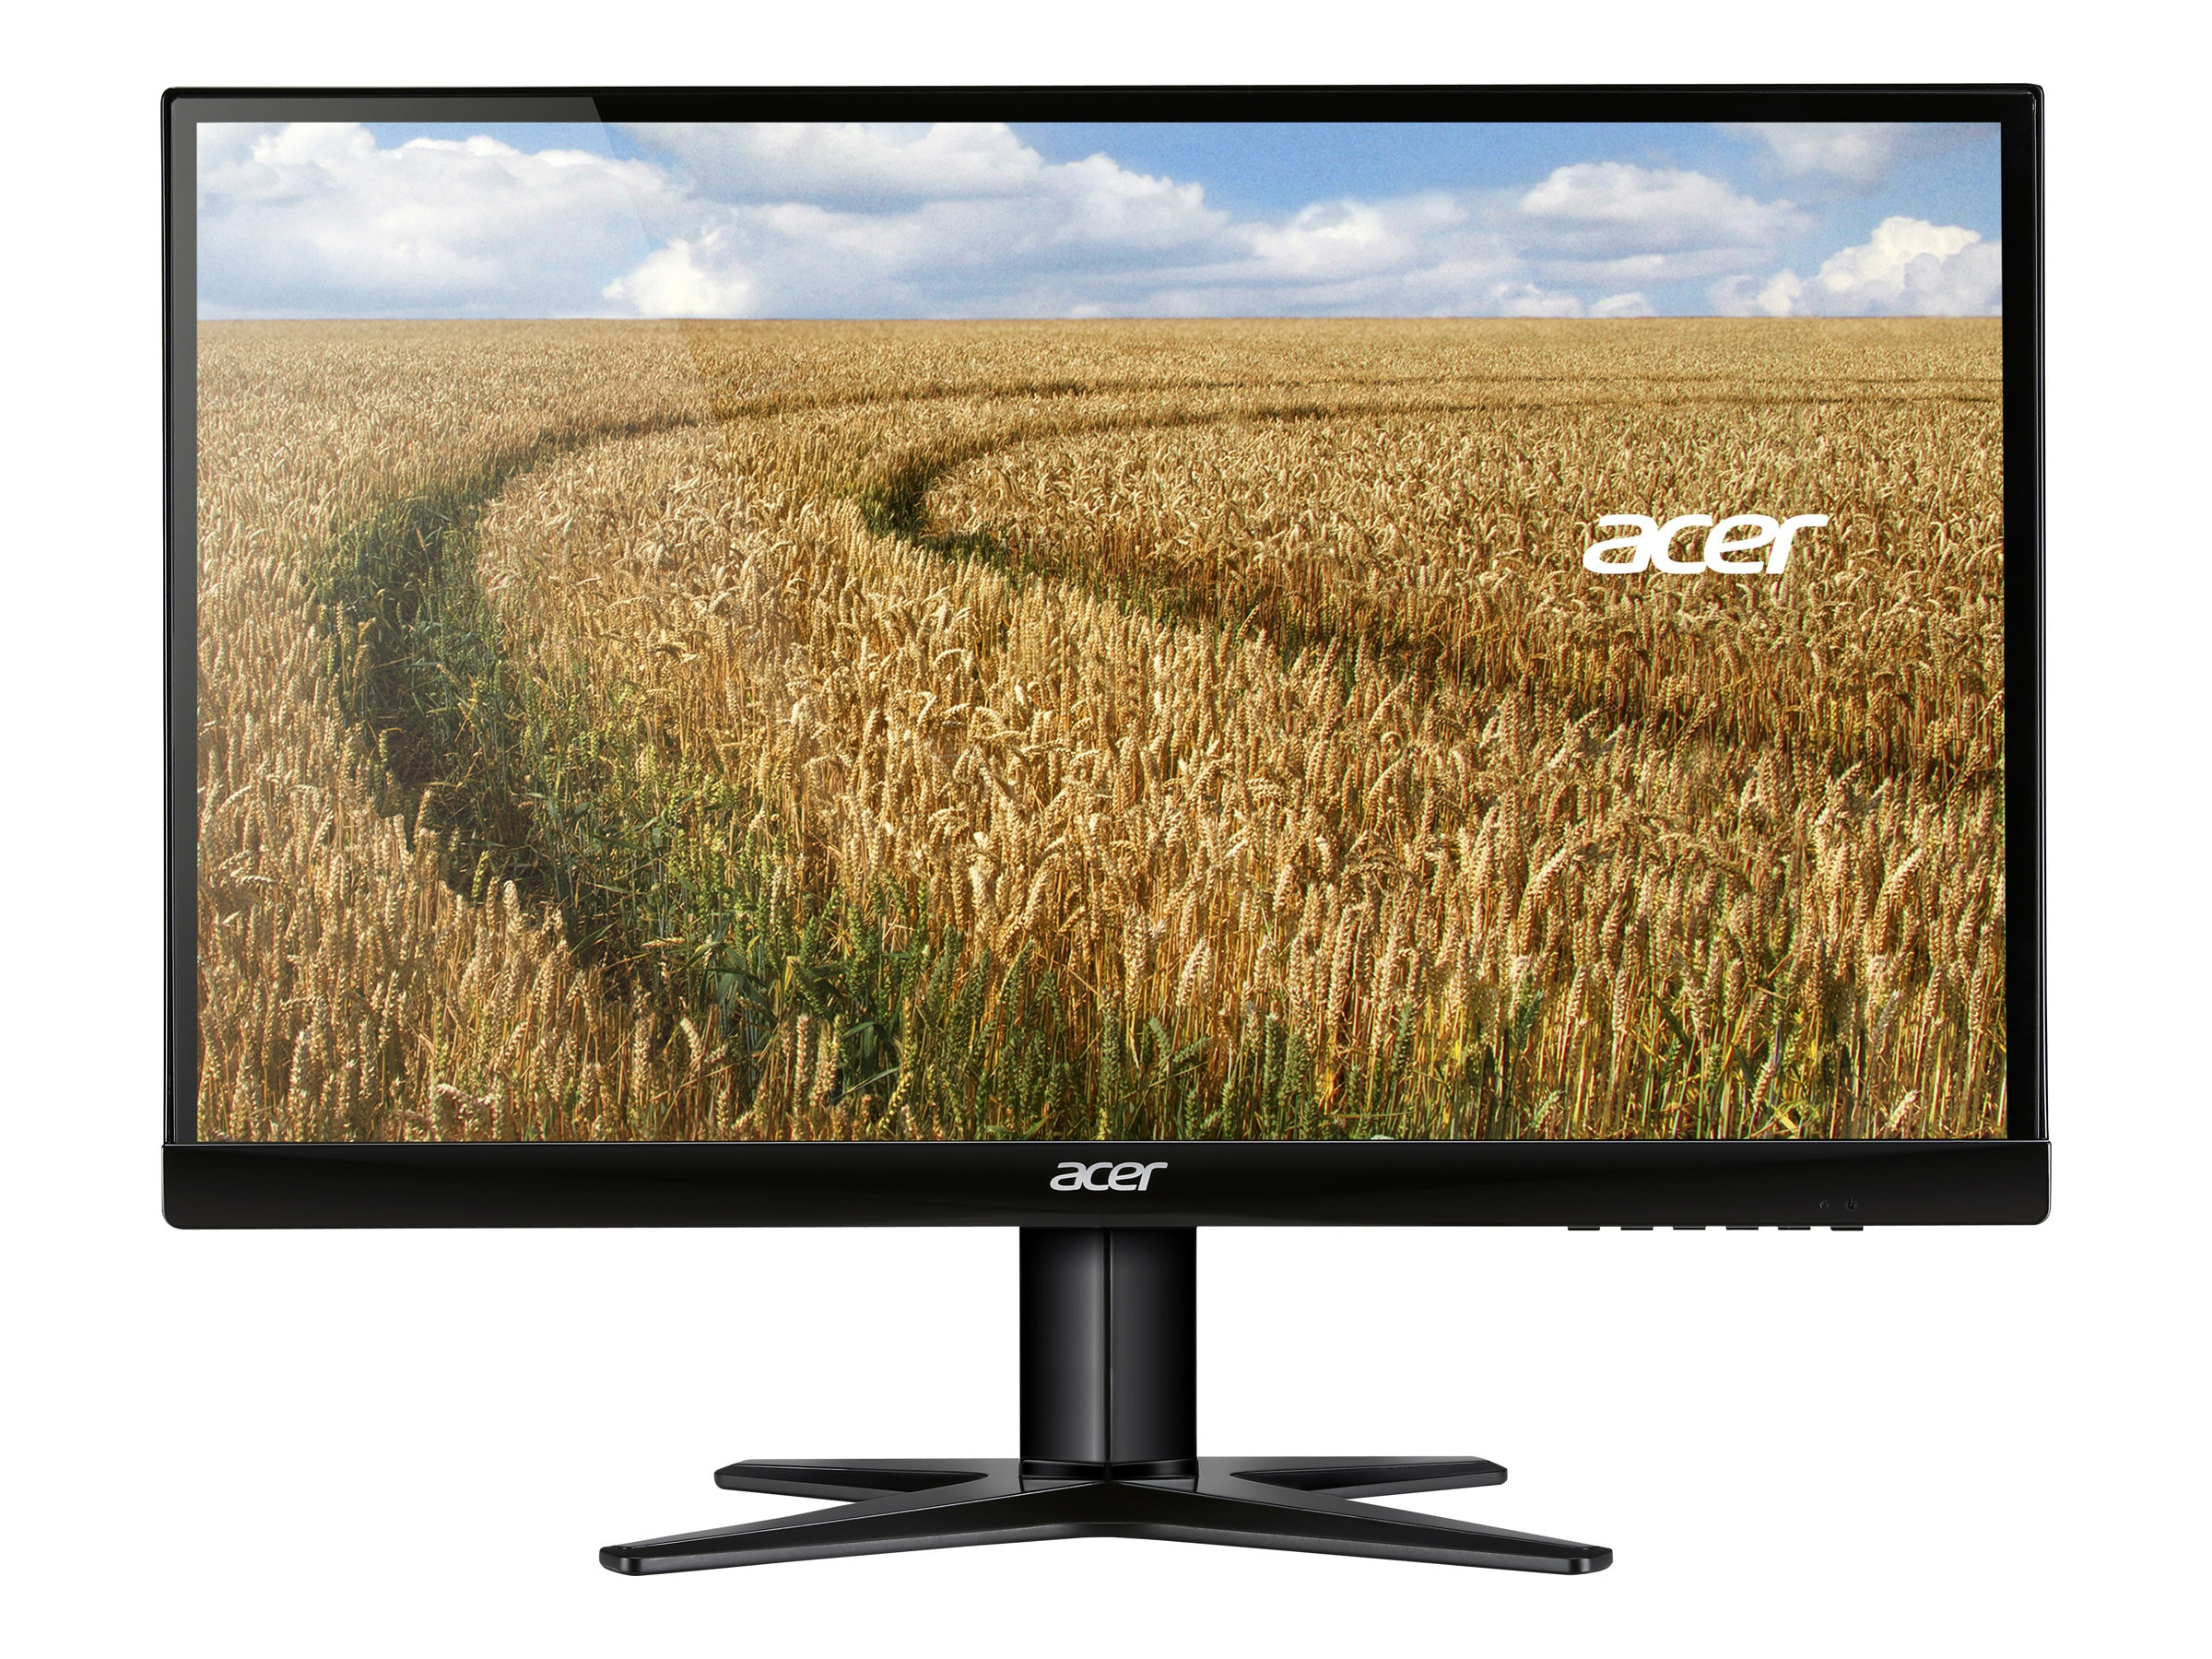 Acer 23.8 G247HYL bmidx Full HD LED-LCD Monitor, Black, UM.QG7AA.002, 20078112, Monitors - LED-LCD